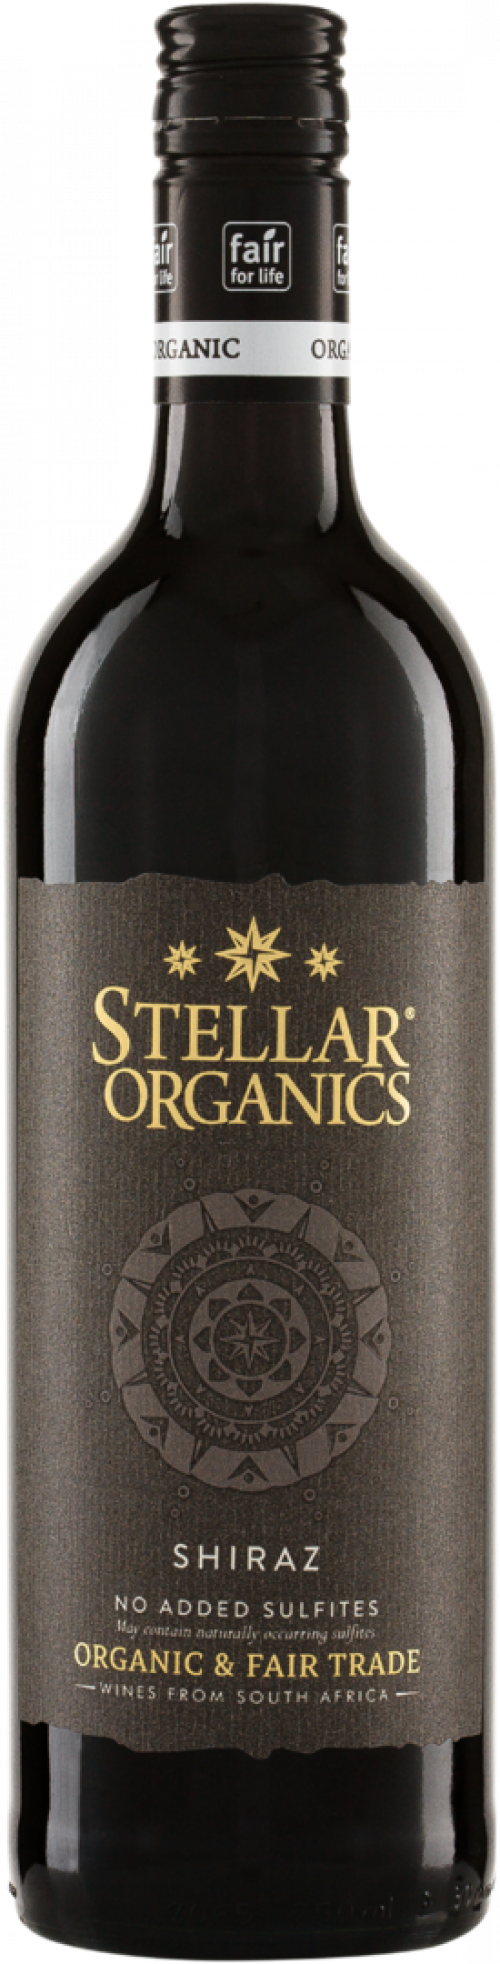 Stellar Organics Shiraz 750ml